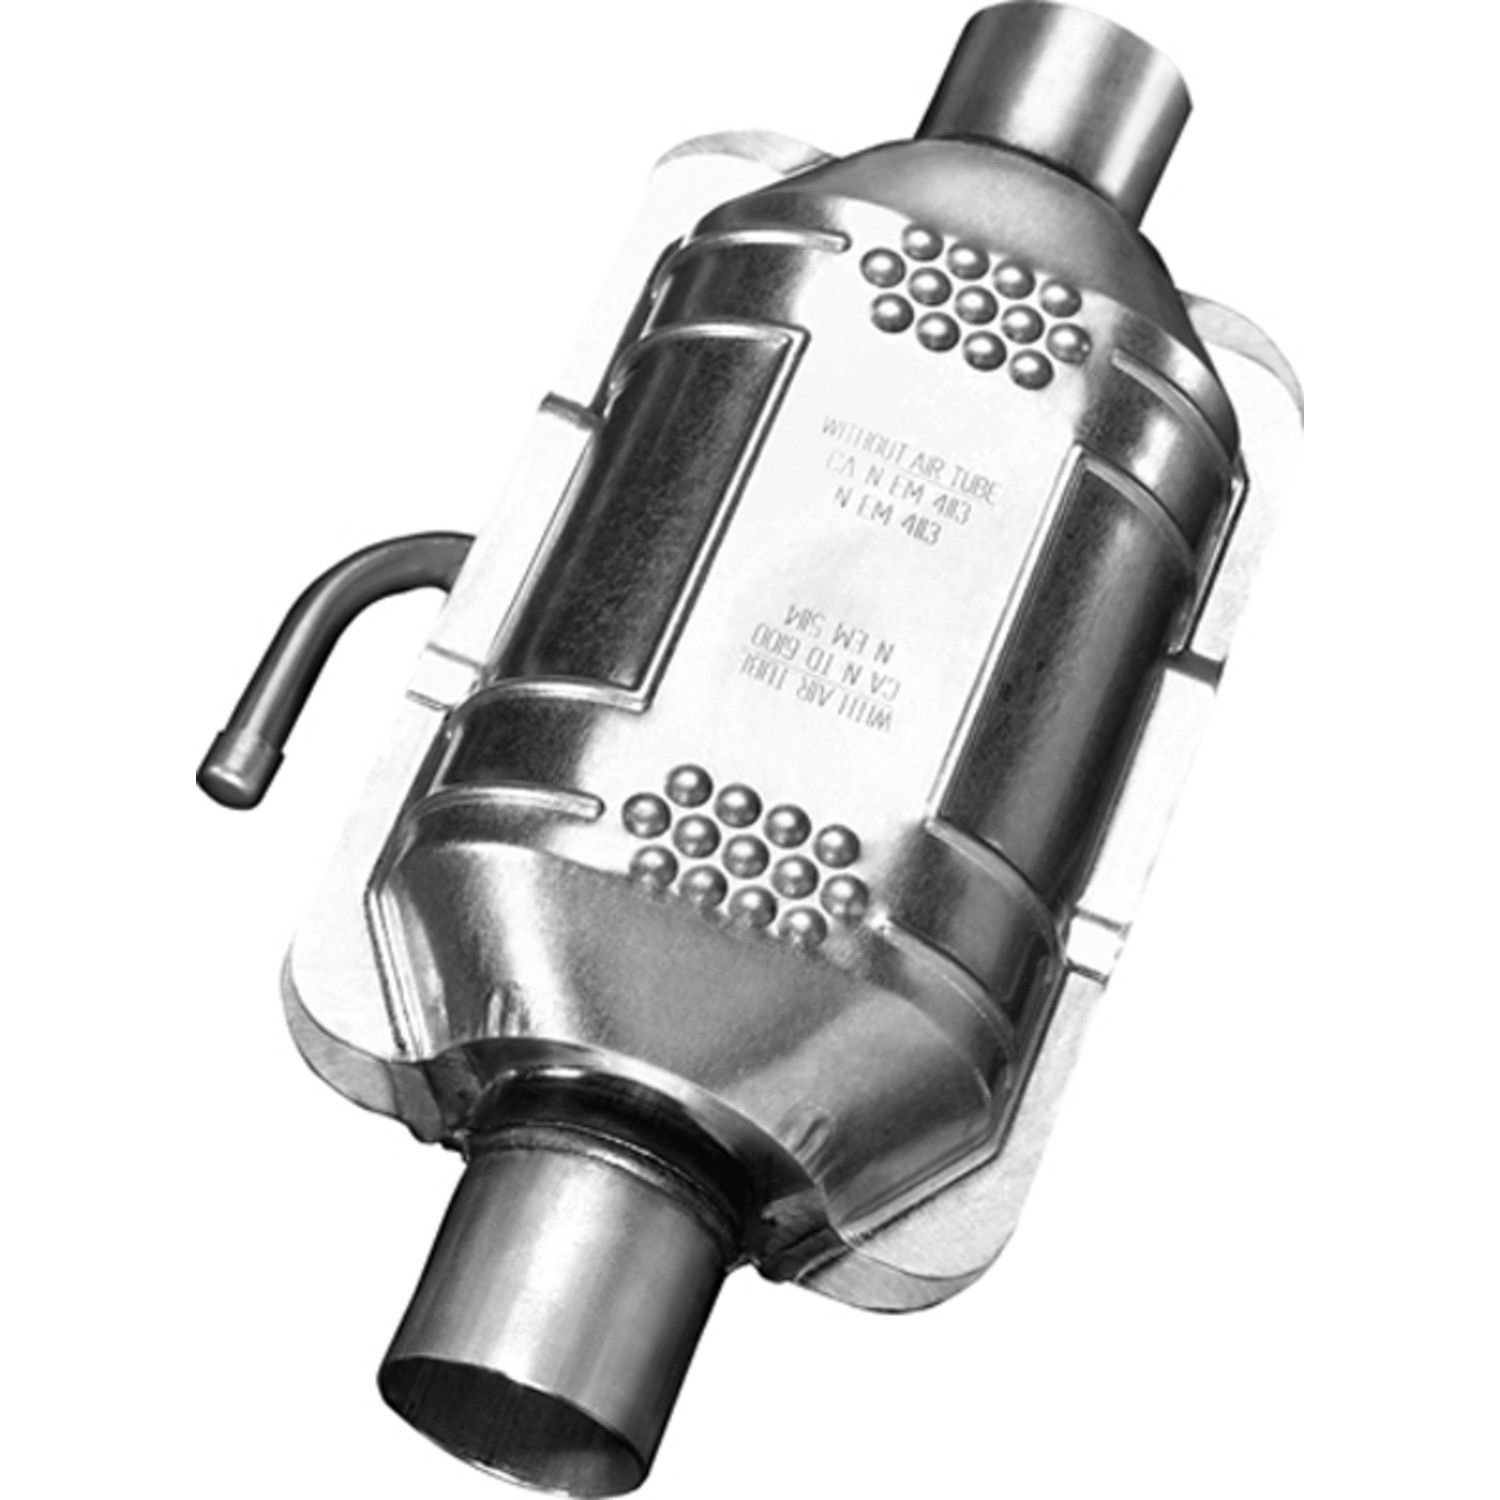 Cadillac Cimarron For Sale: Eastern Catalytic 70427 Catalytic Converter